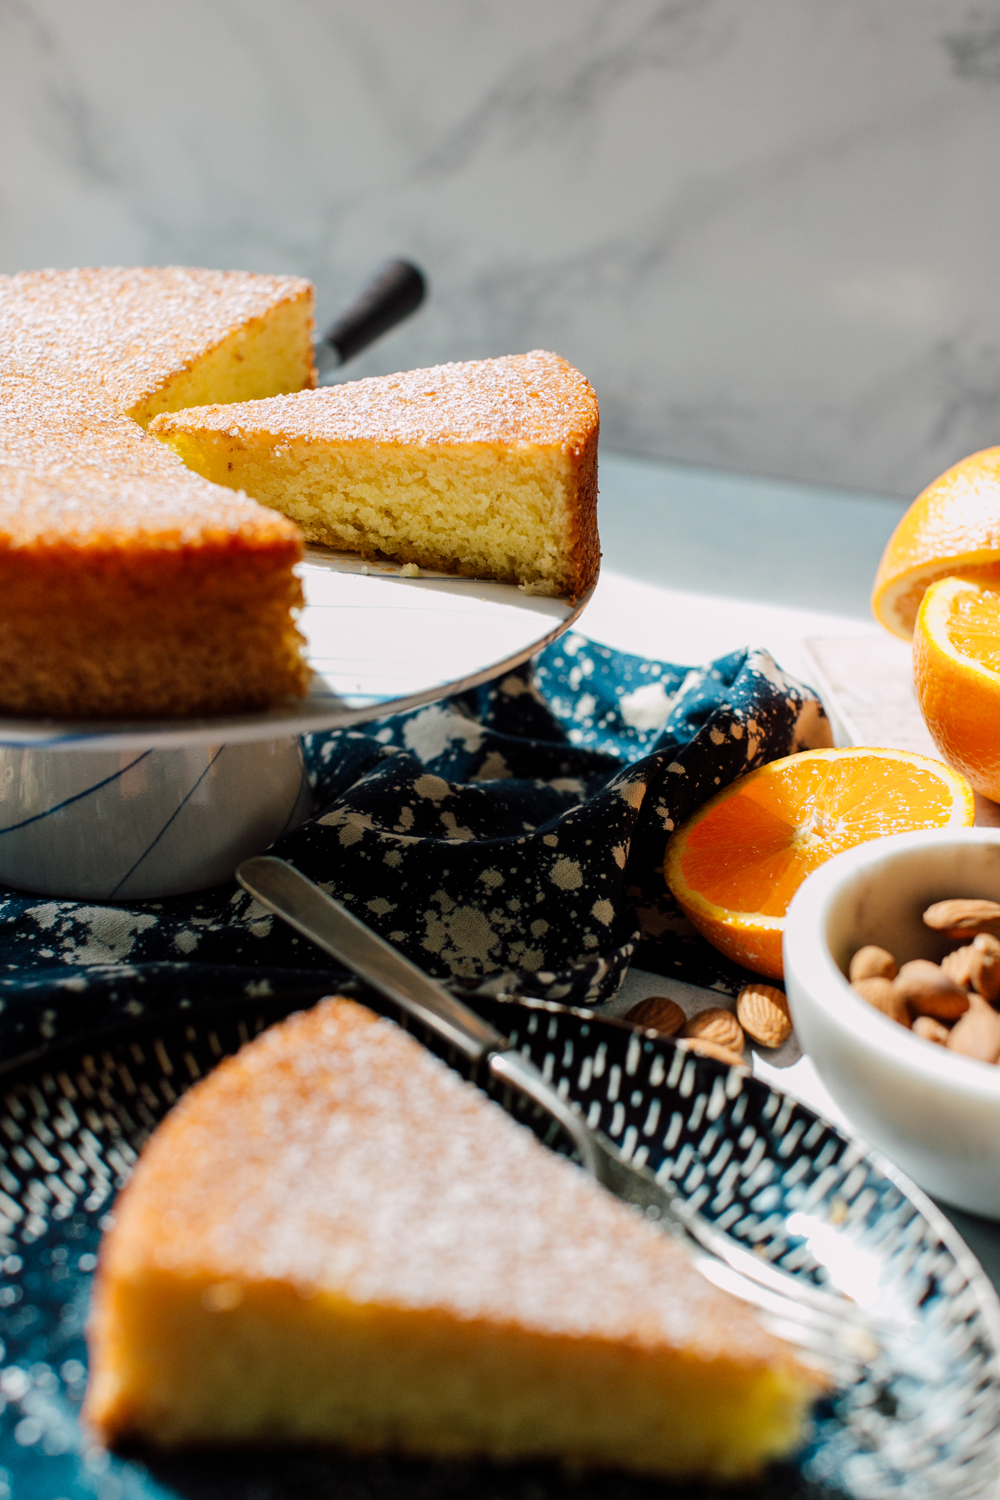 011-bellingham-food-photographer-katheryn-moran-orange-almond-cake.jpg